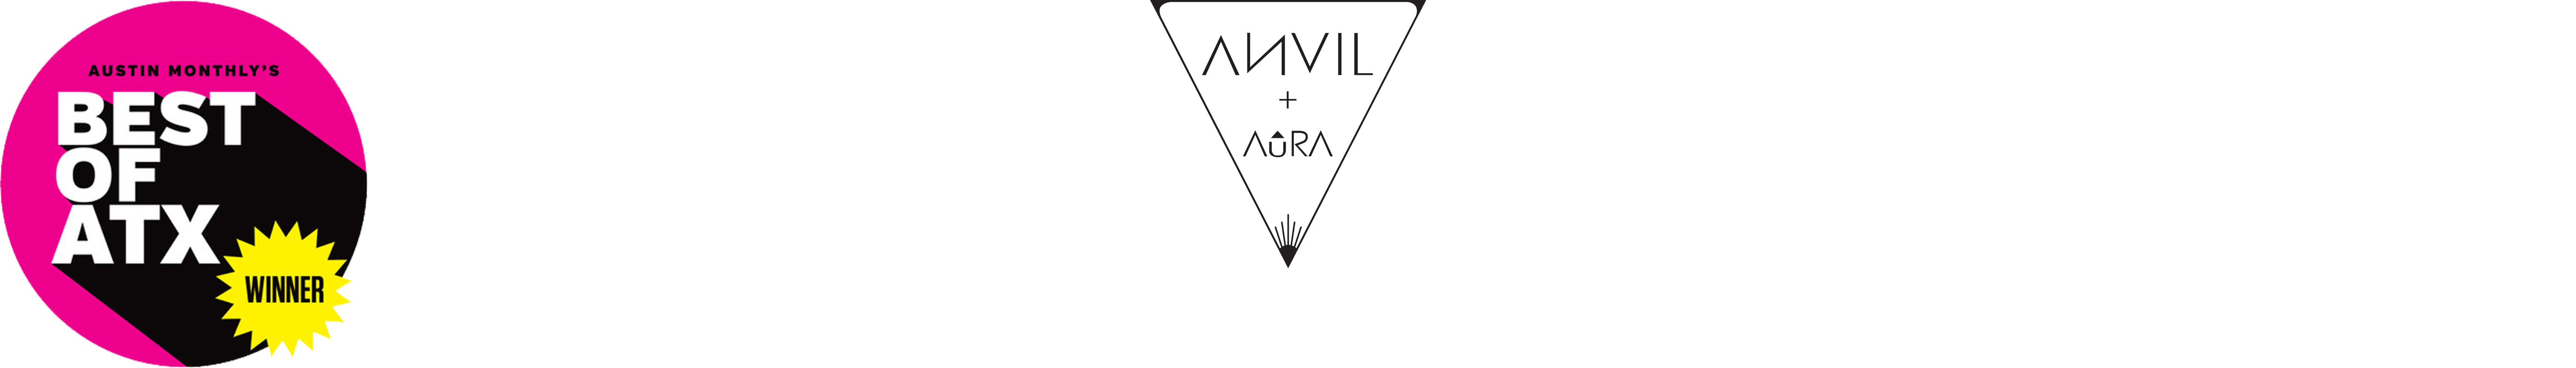 Anvil+Aura